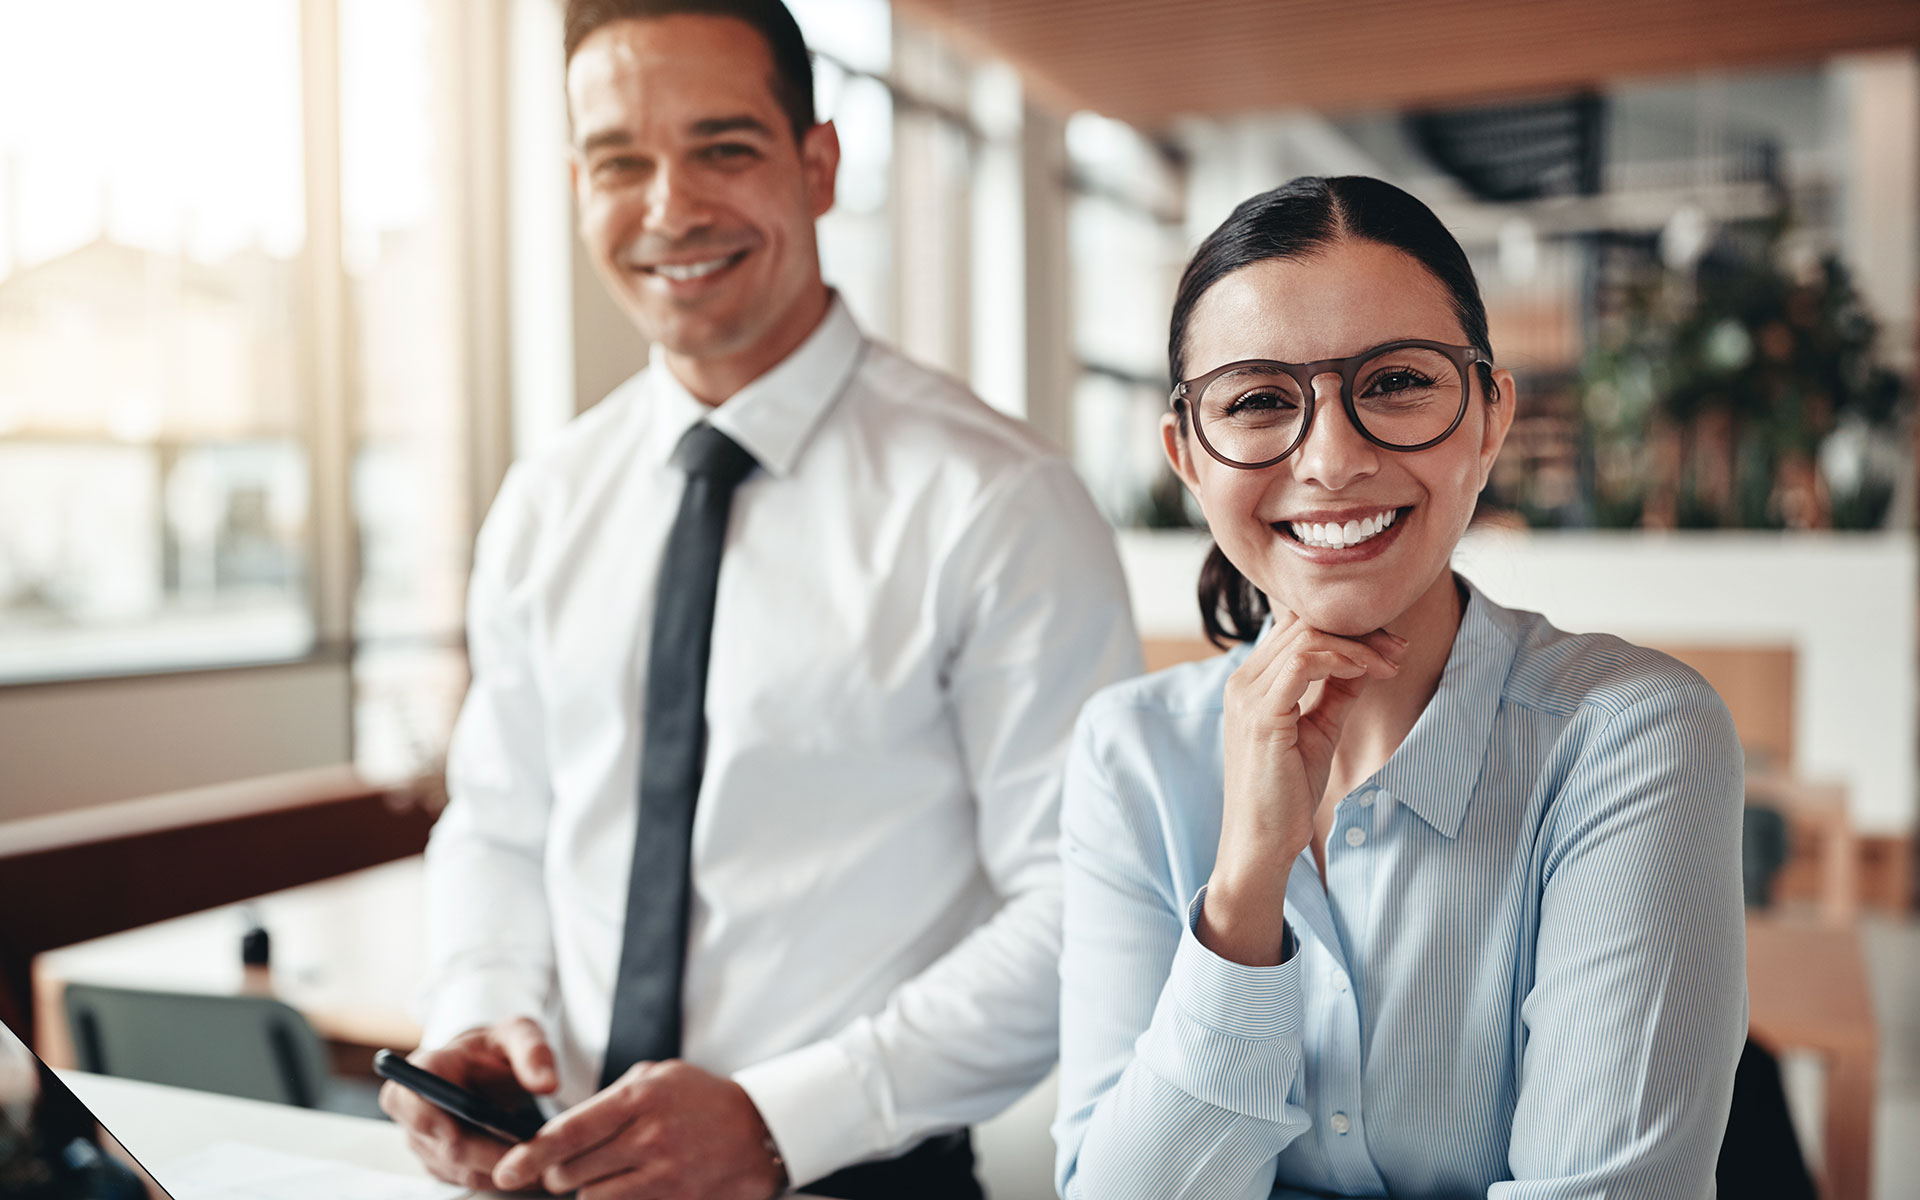 About Us - Woman and Man Business Employees in Modern Office Smiling